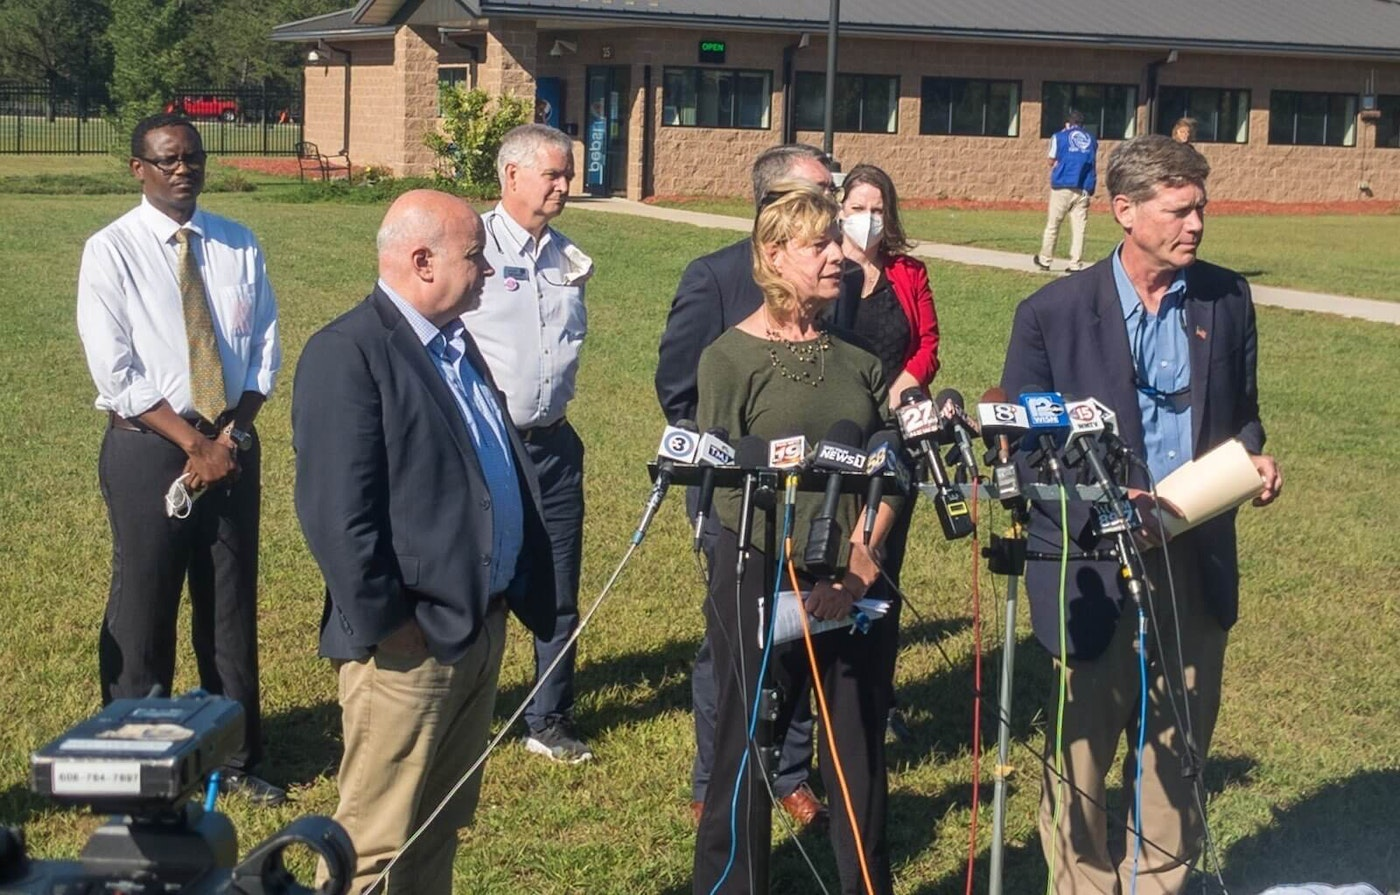 Democratic state and federal lawmakers speak to reporters Tuesday after visiting Afghan refugees at Fort McCoy.